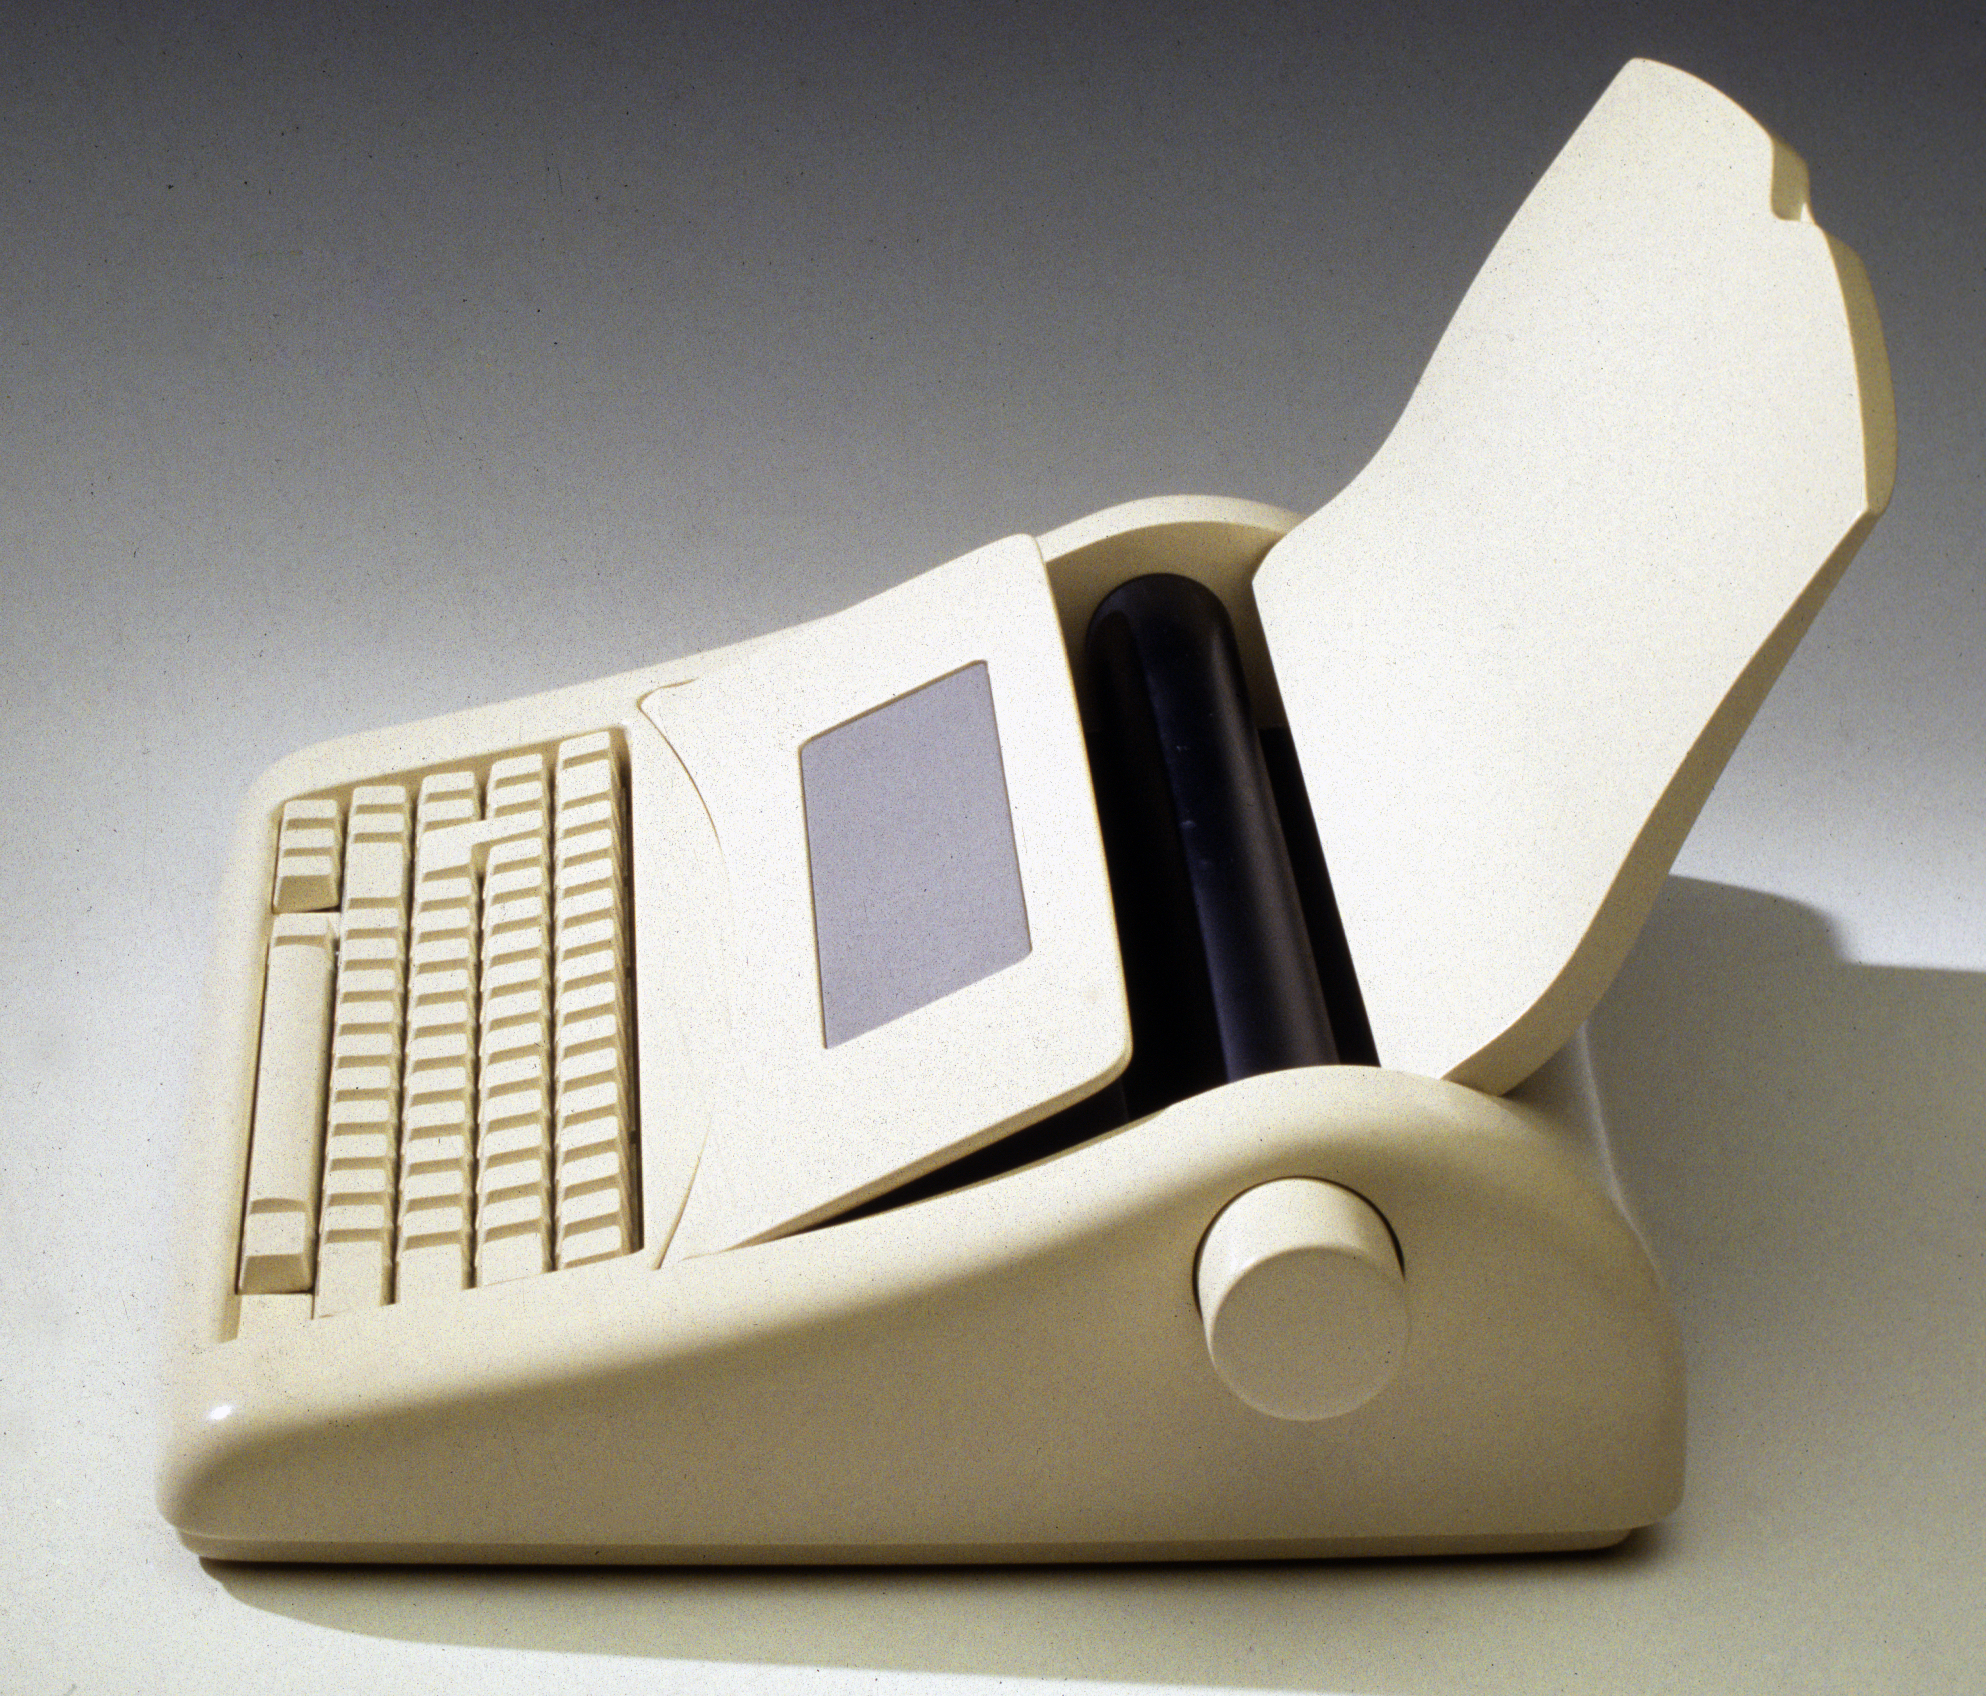 2 Olivetti_90's_ElectronicTypewriter_07 copy.jpg